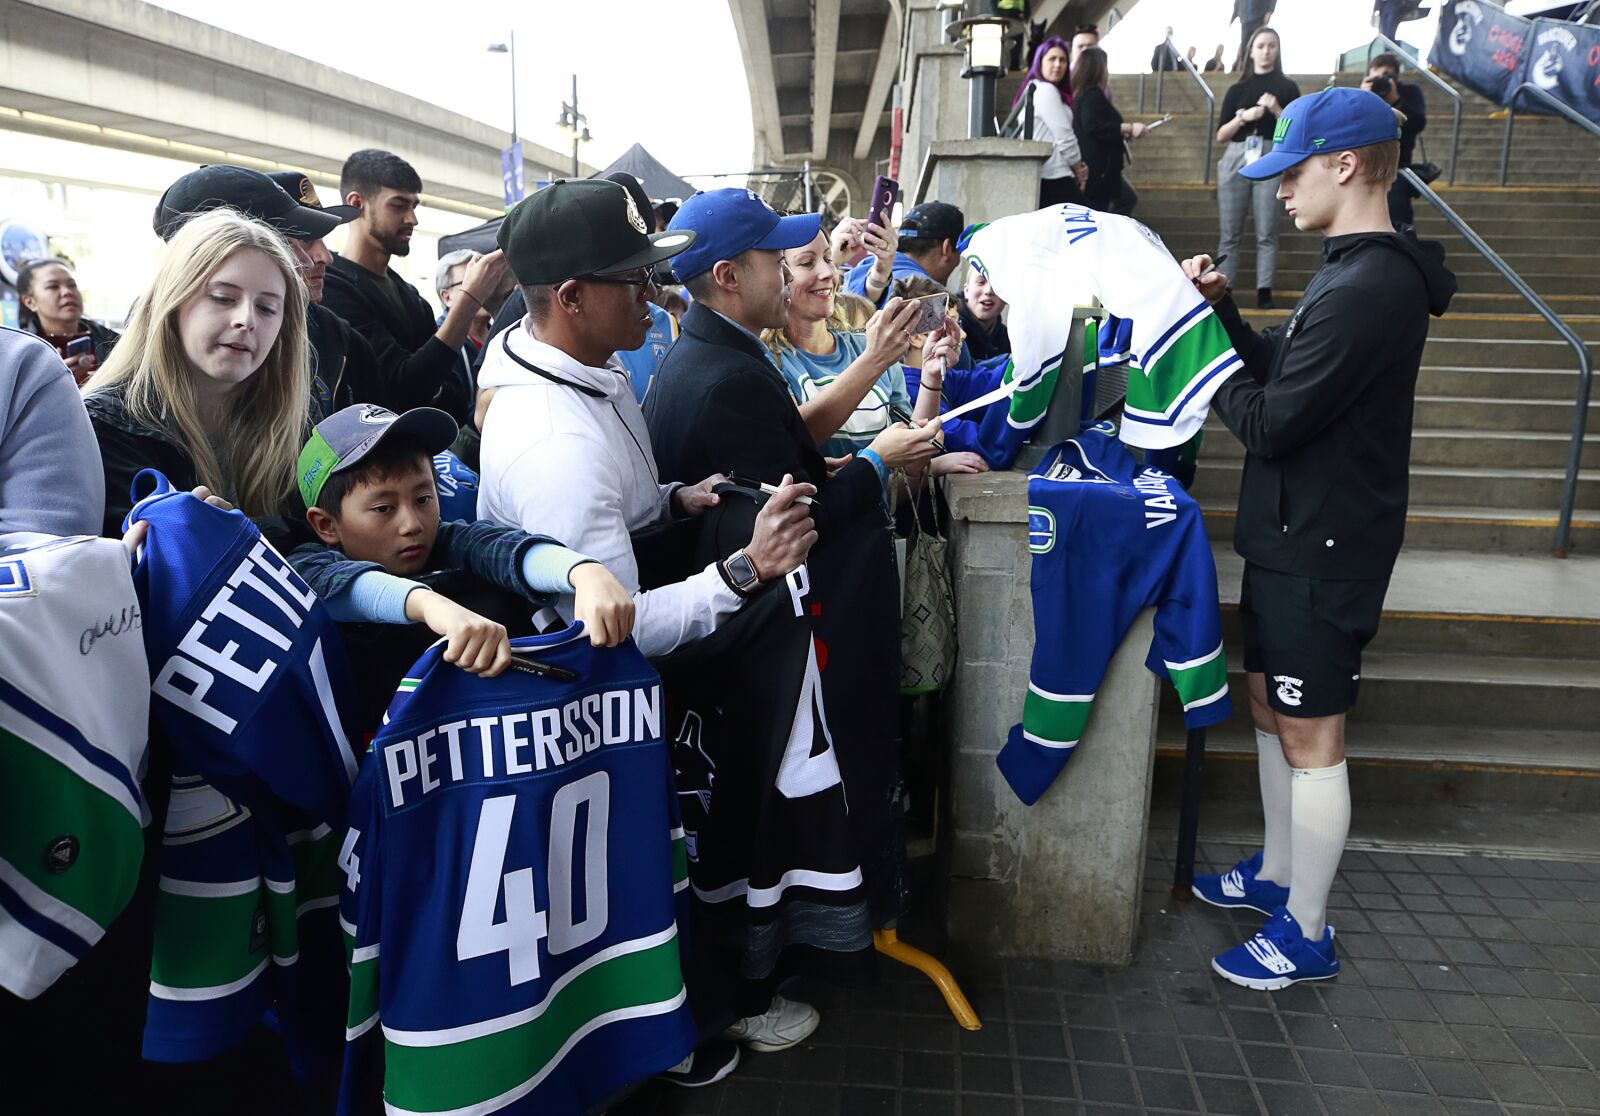 brand new 62330 74b44 Vancouver Canucks: Thoughts on new and other rumoured jerseys